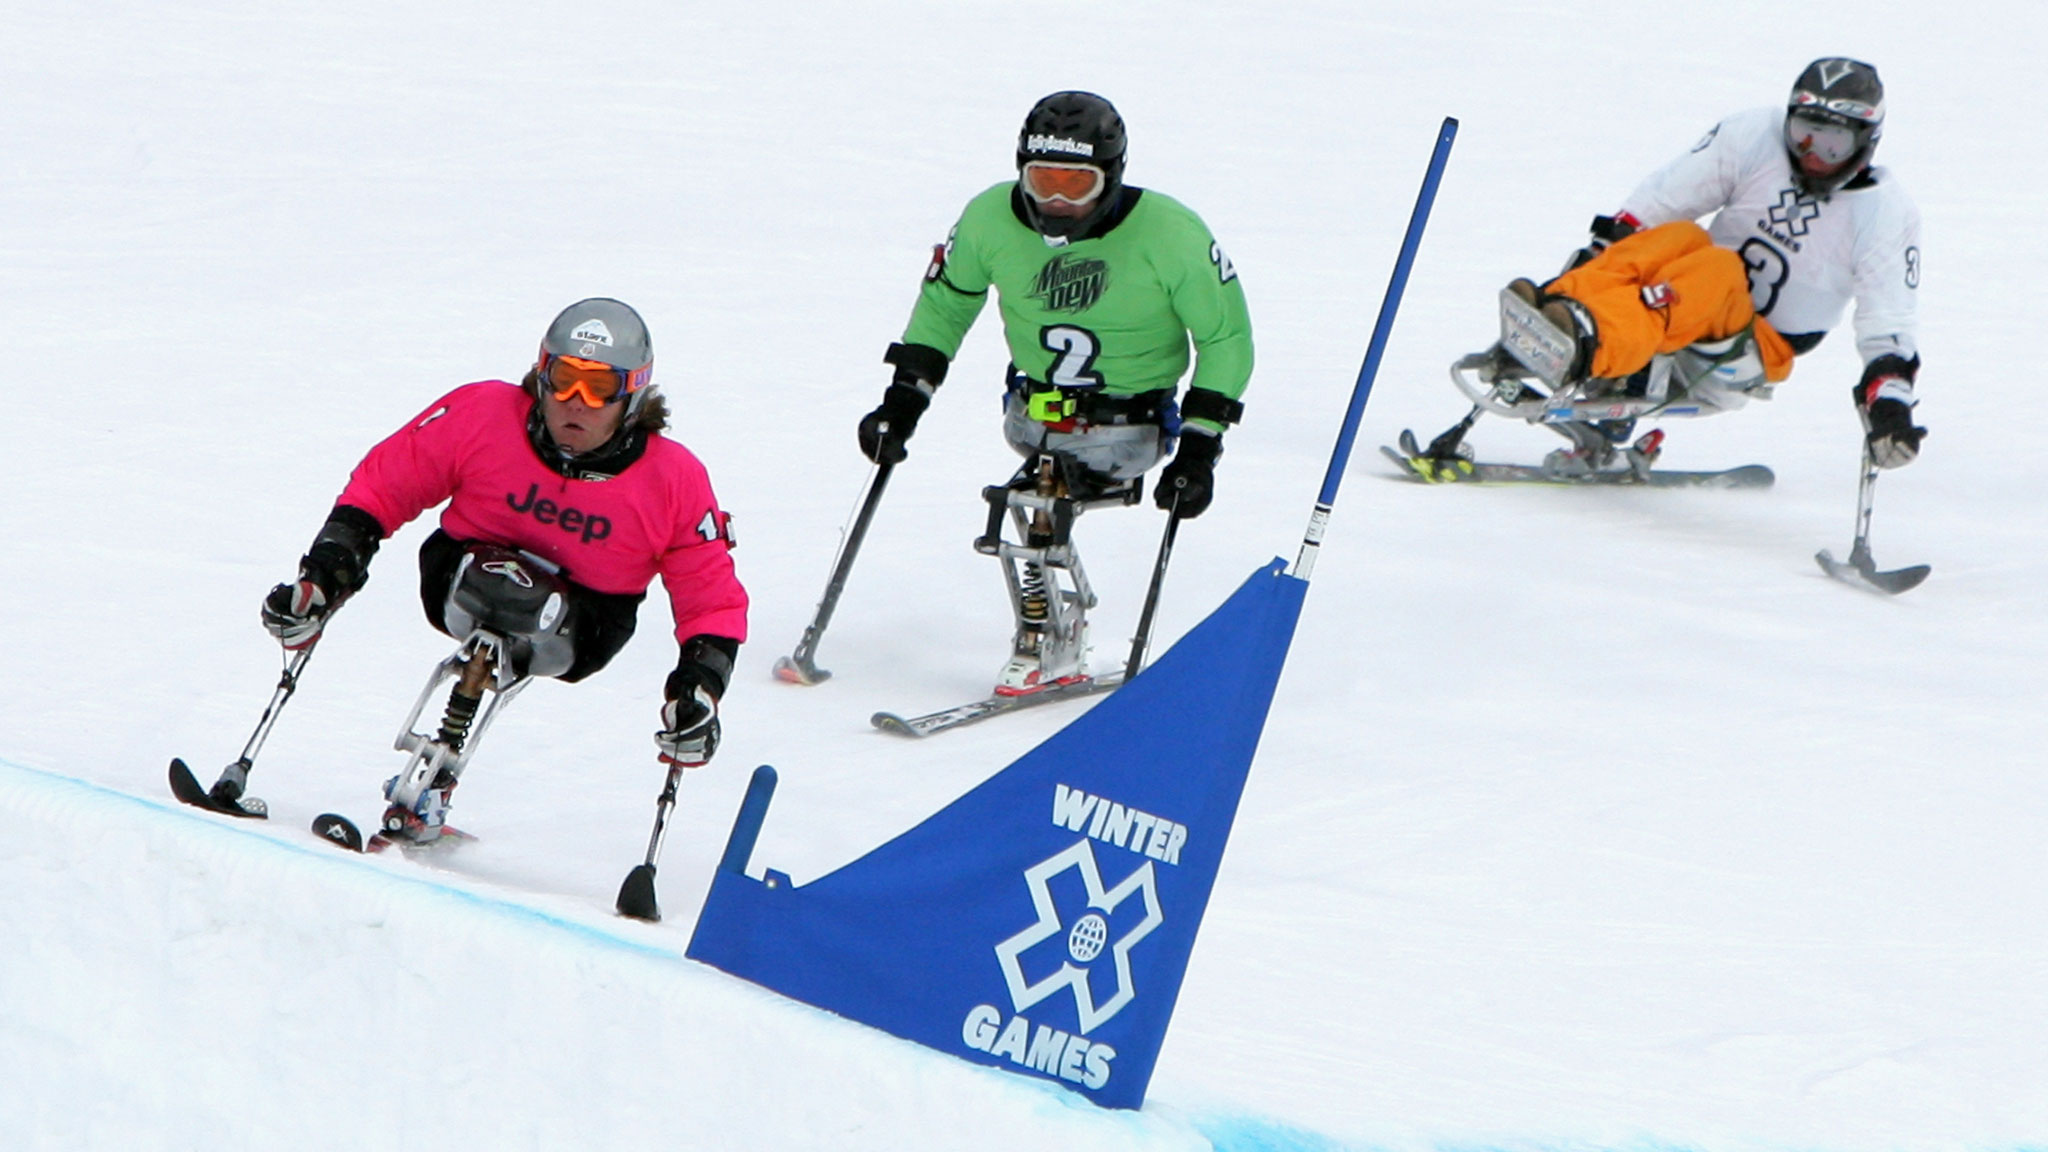 Tyler Walker, from Franconia, N.H., leads Kevin Connolly and Kees-Jan van der Klooster as they finished in that order to take home the medals in the inaugural Mono Skier X at Winter X Games 11 in 2007.